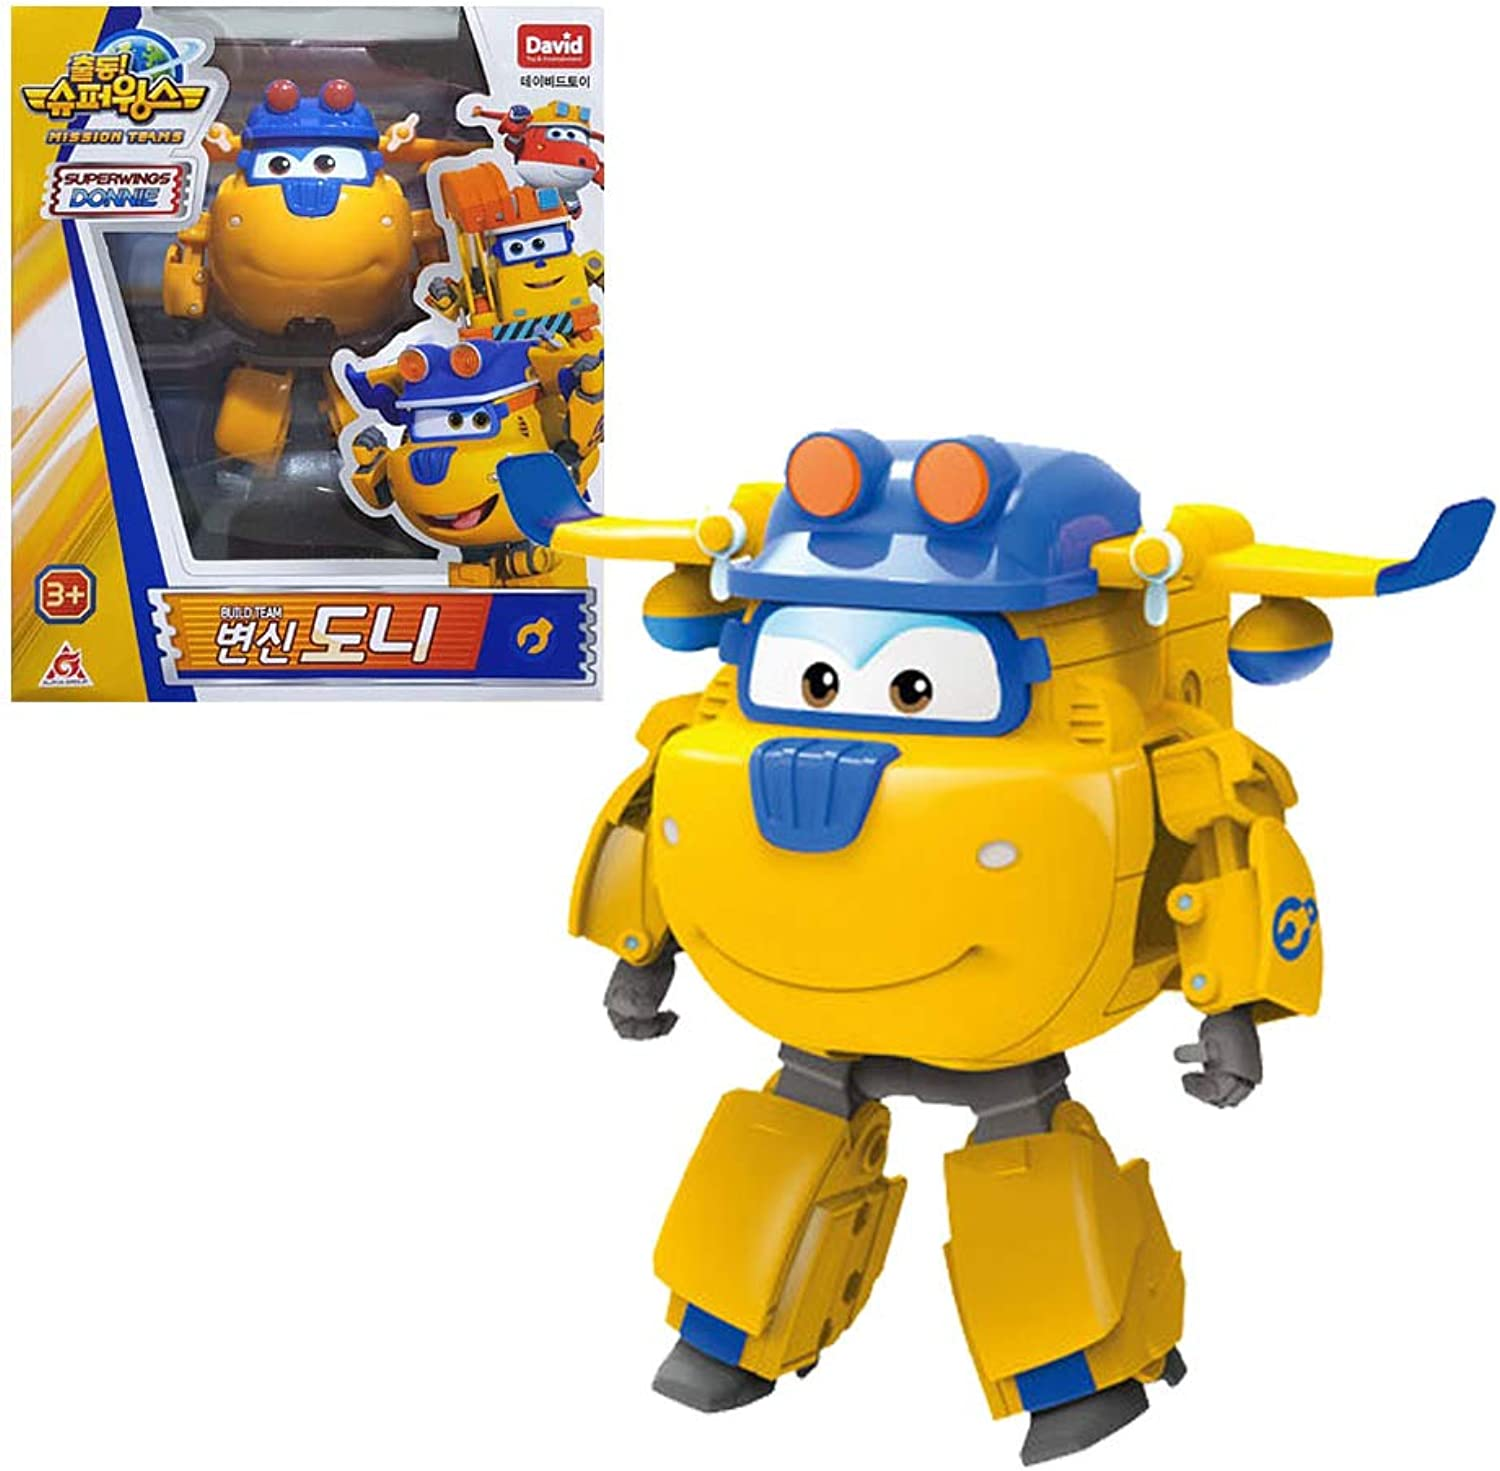 David toy Super Wings Season 3 Airplane Transforming Robot Toy Action Figures for Boy Girls Kids (Yellow, 5 ) Donnie